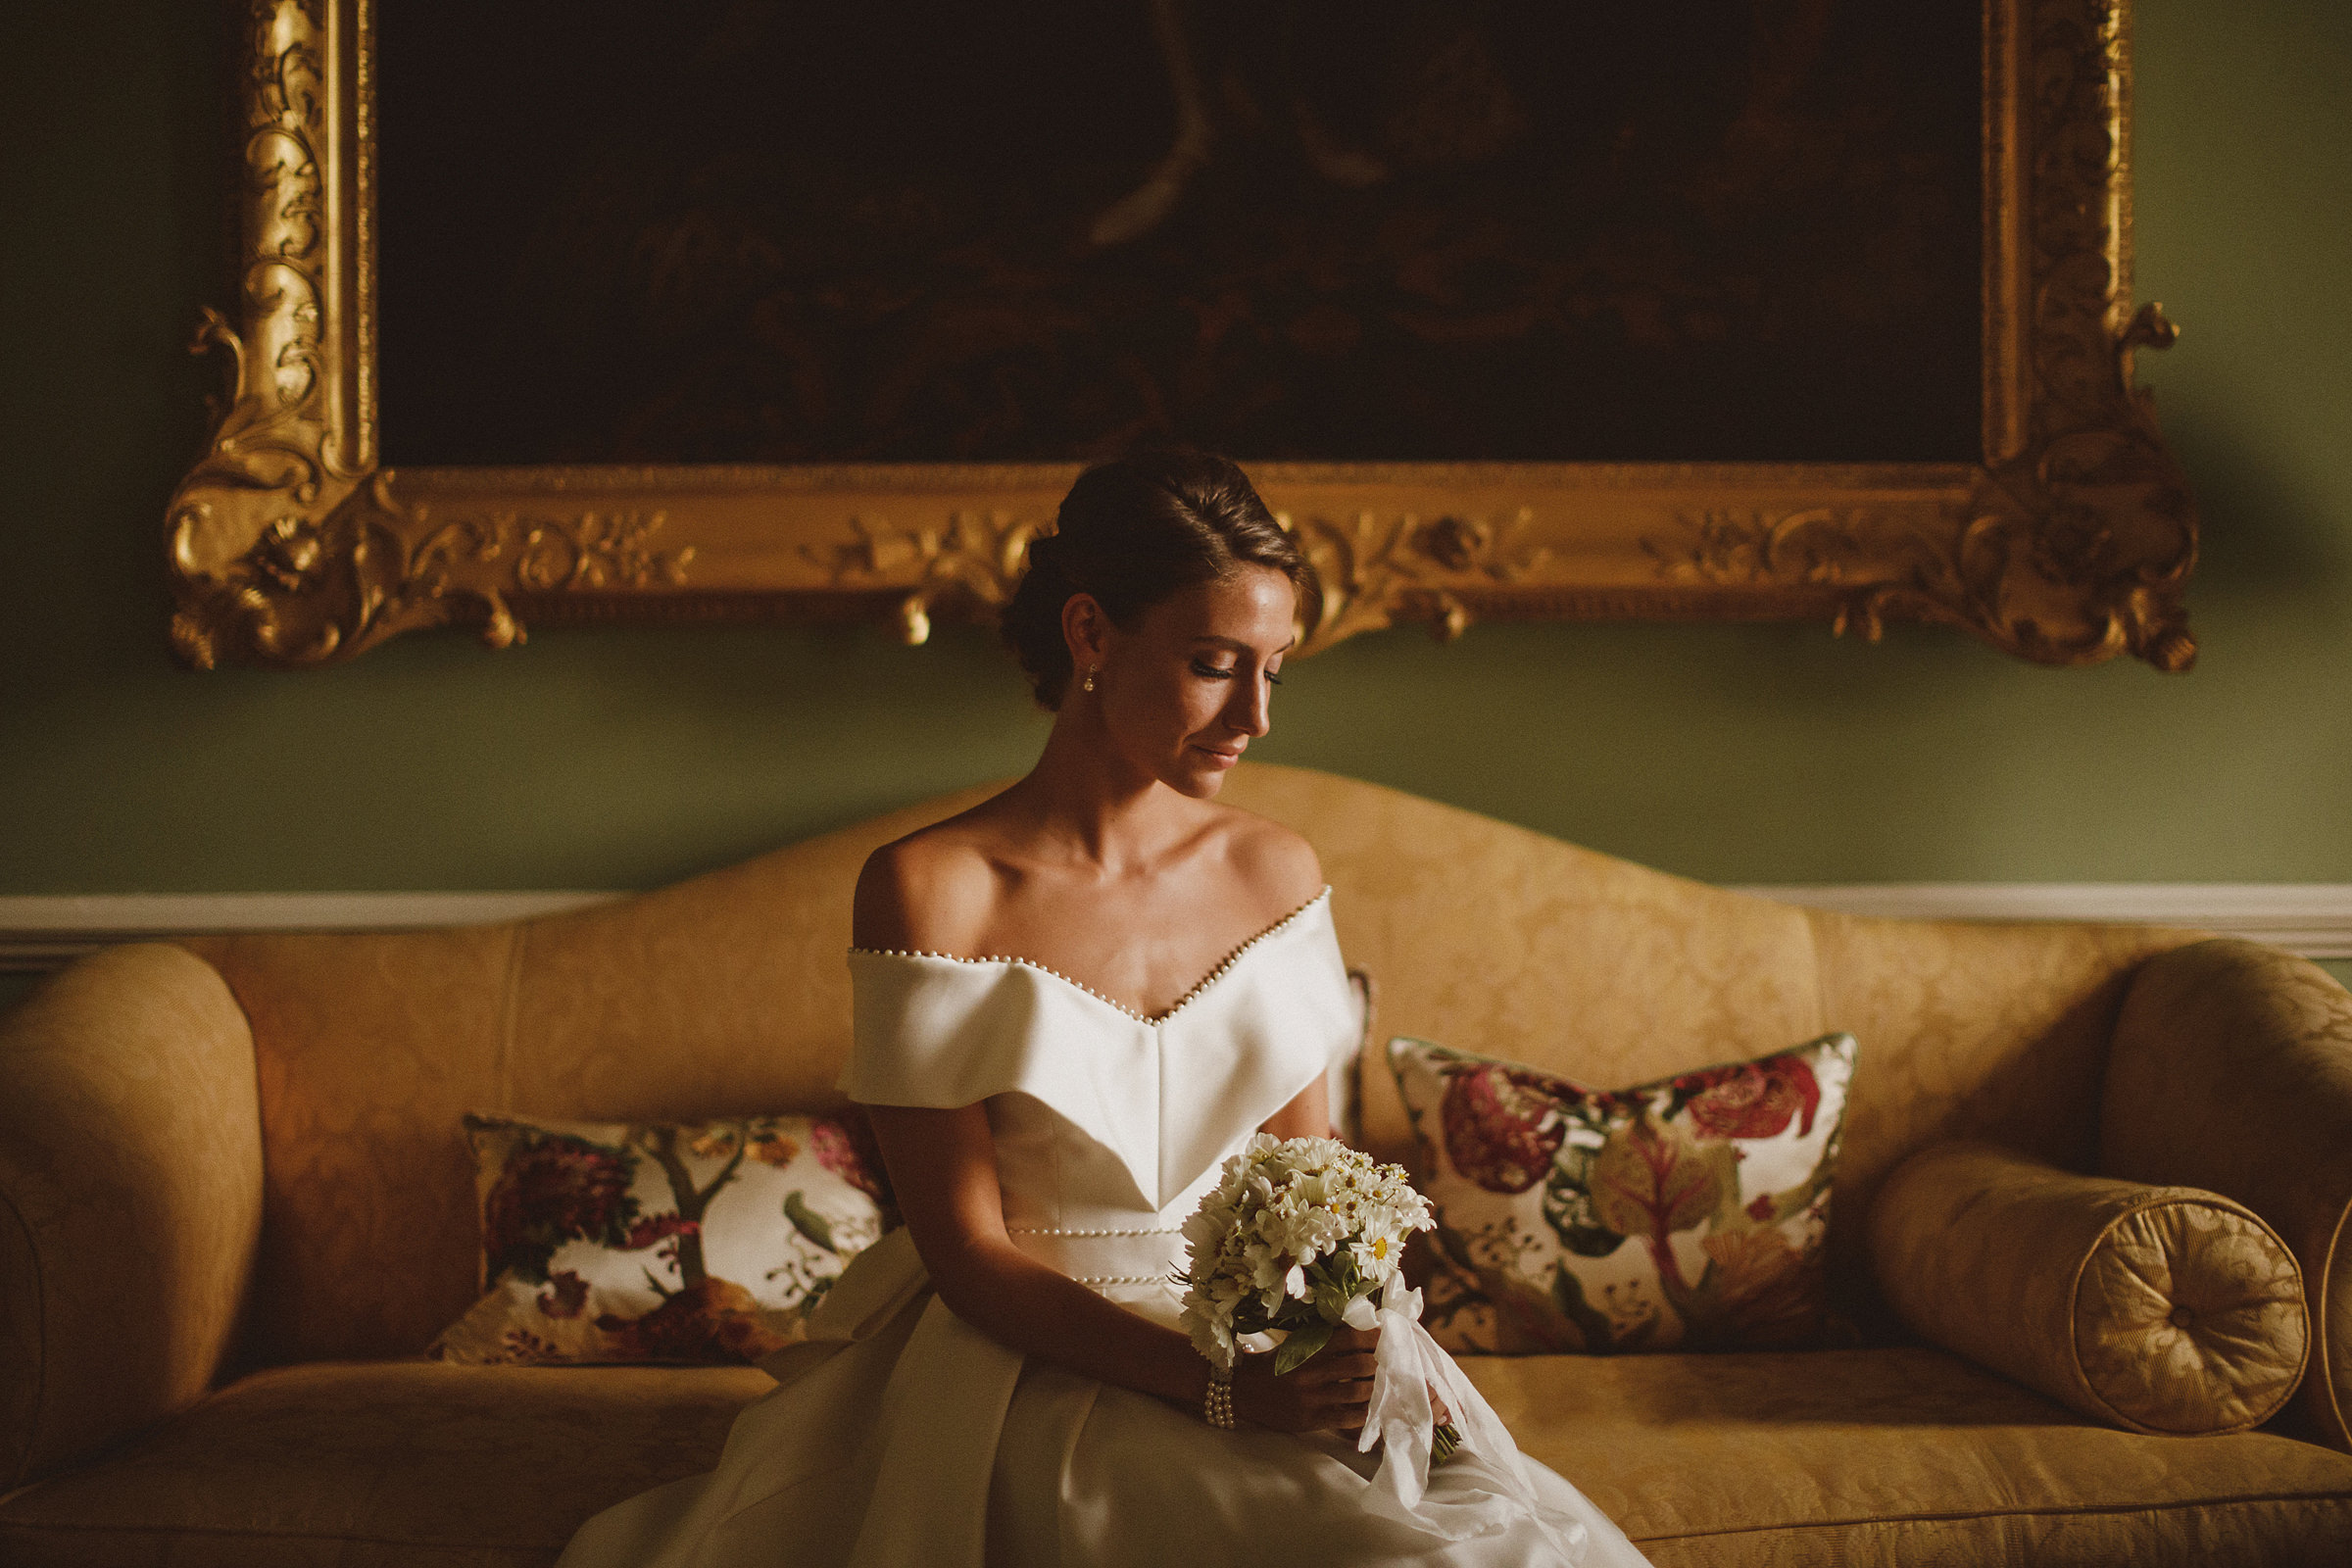 Contemplative bride on couch - photo by Ed Peers Photography